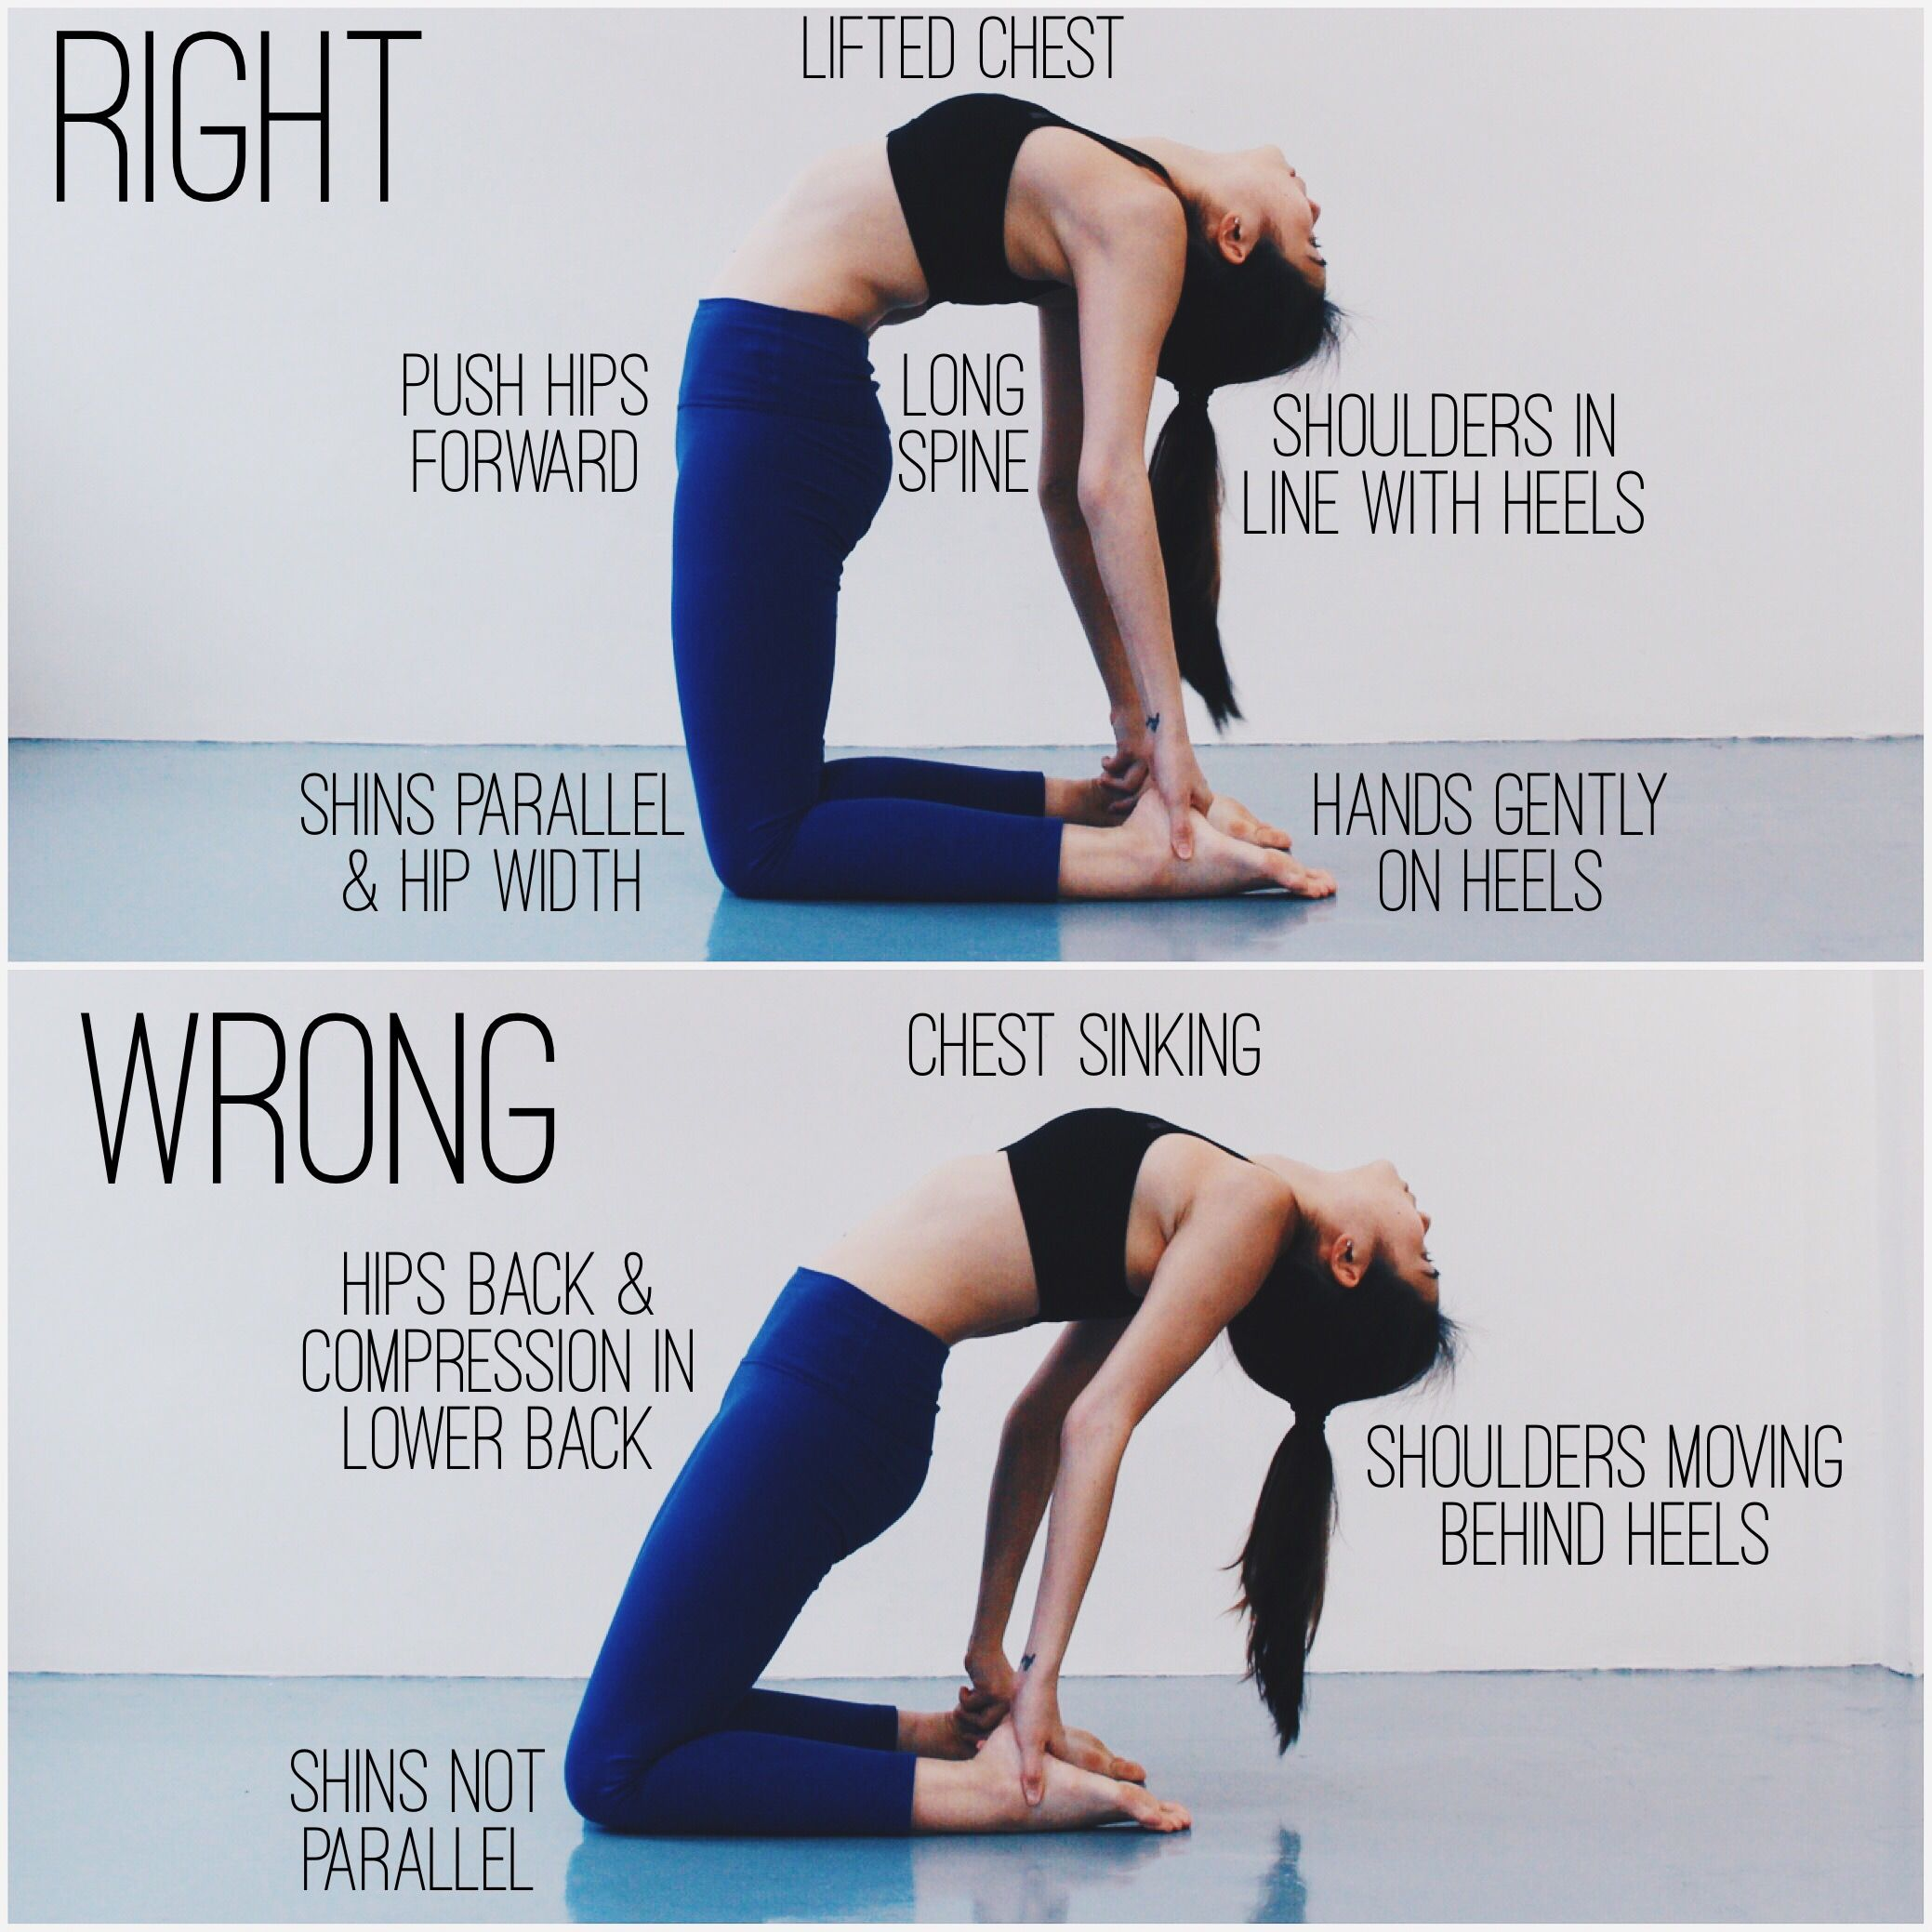 How to Do Camel Pose (Ustrasana) in Yoga How to Do Camel Pose (Ustrasana) in Yoga new foto